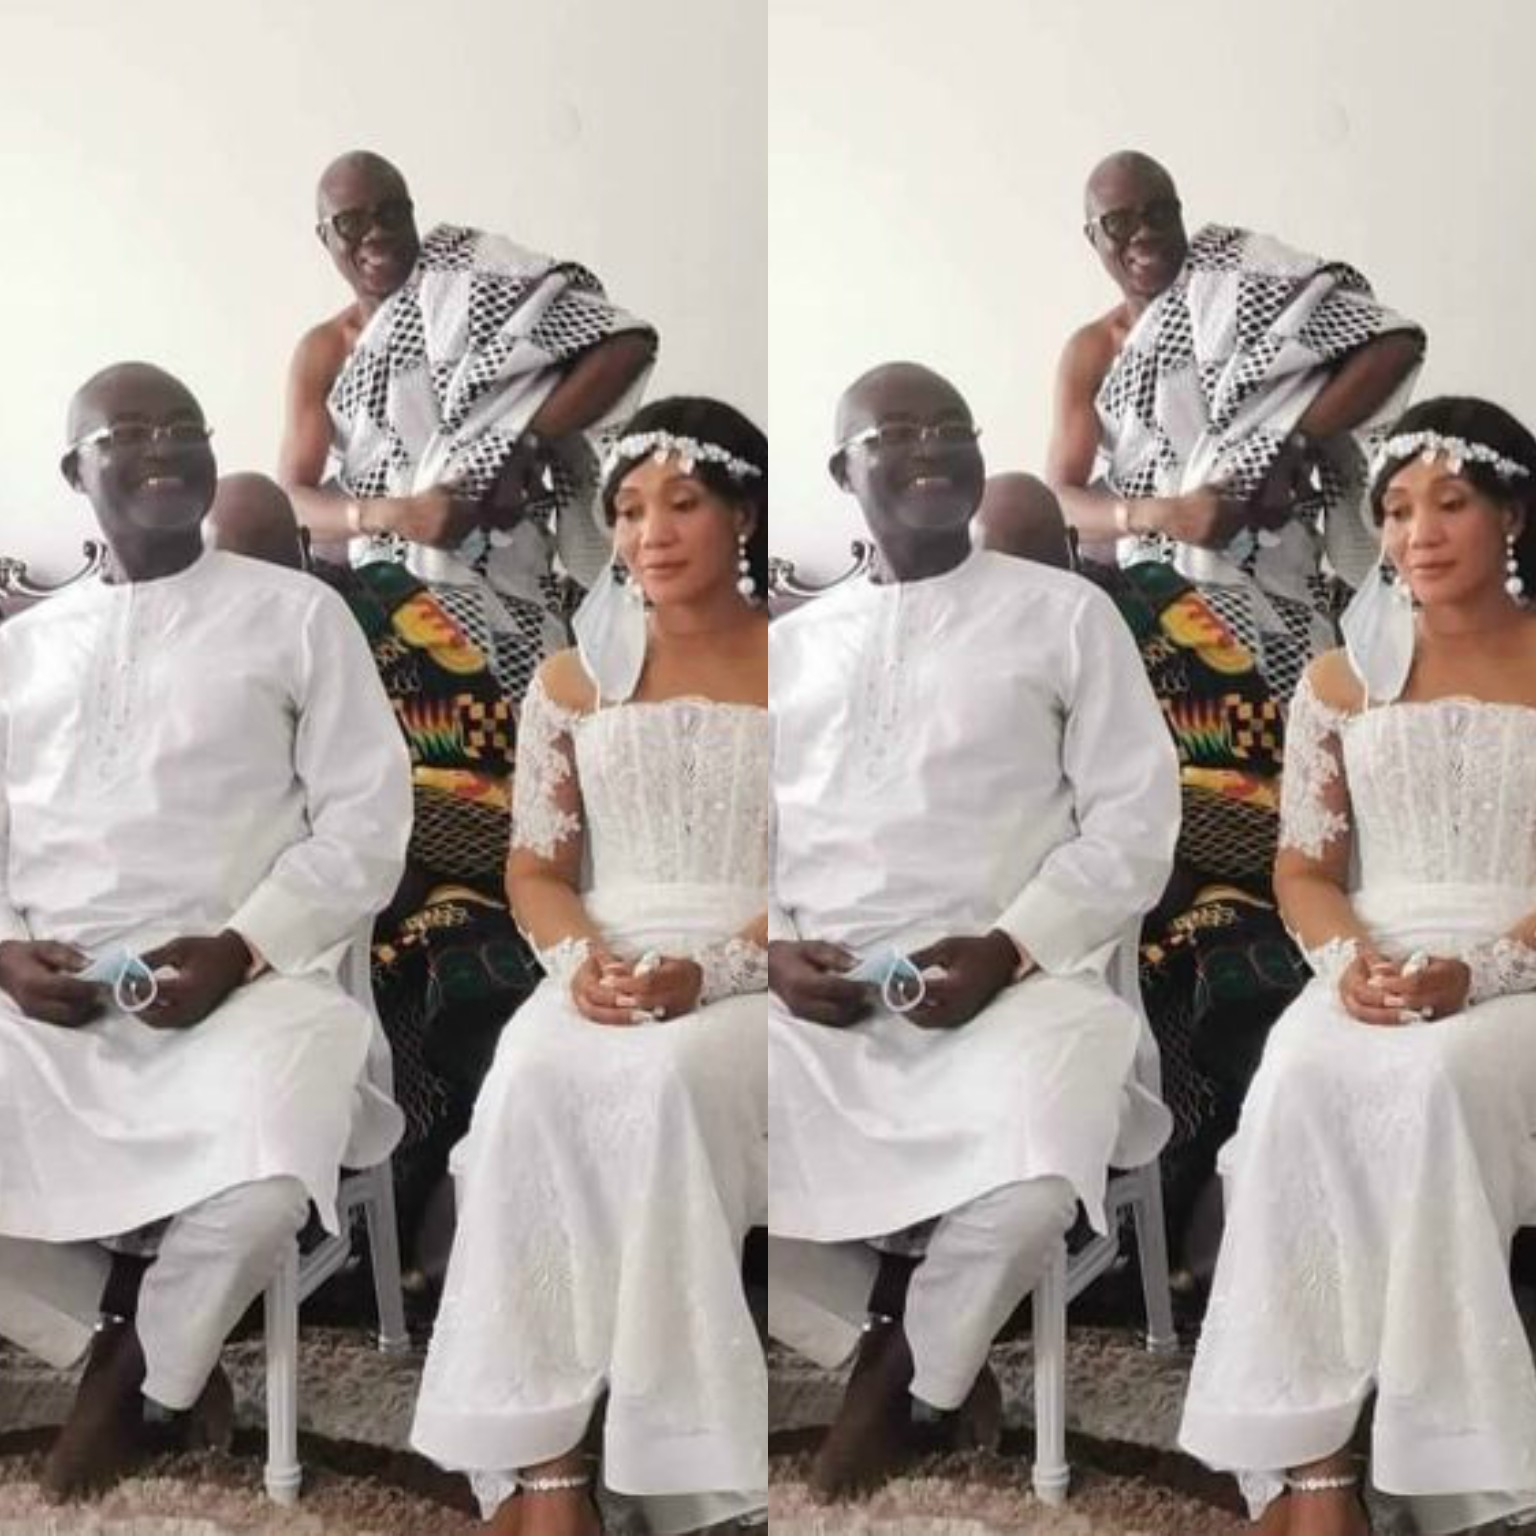 Exclusive: Hon Kennedy Agyapong marries his 3rd wife in a traditional  setting